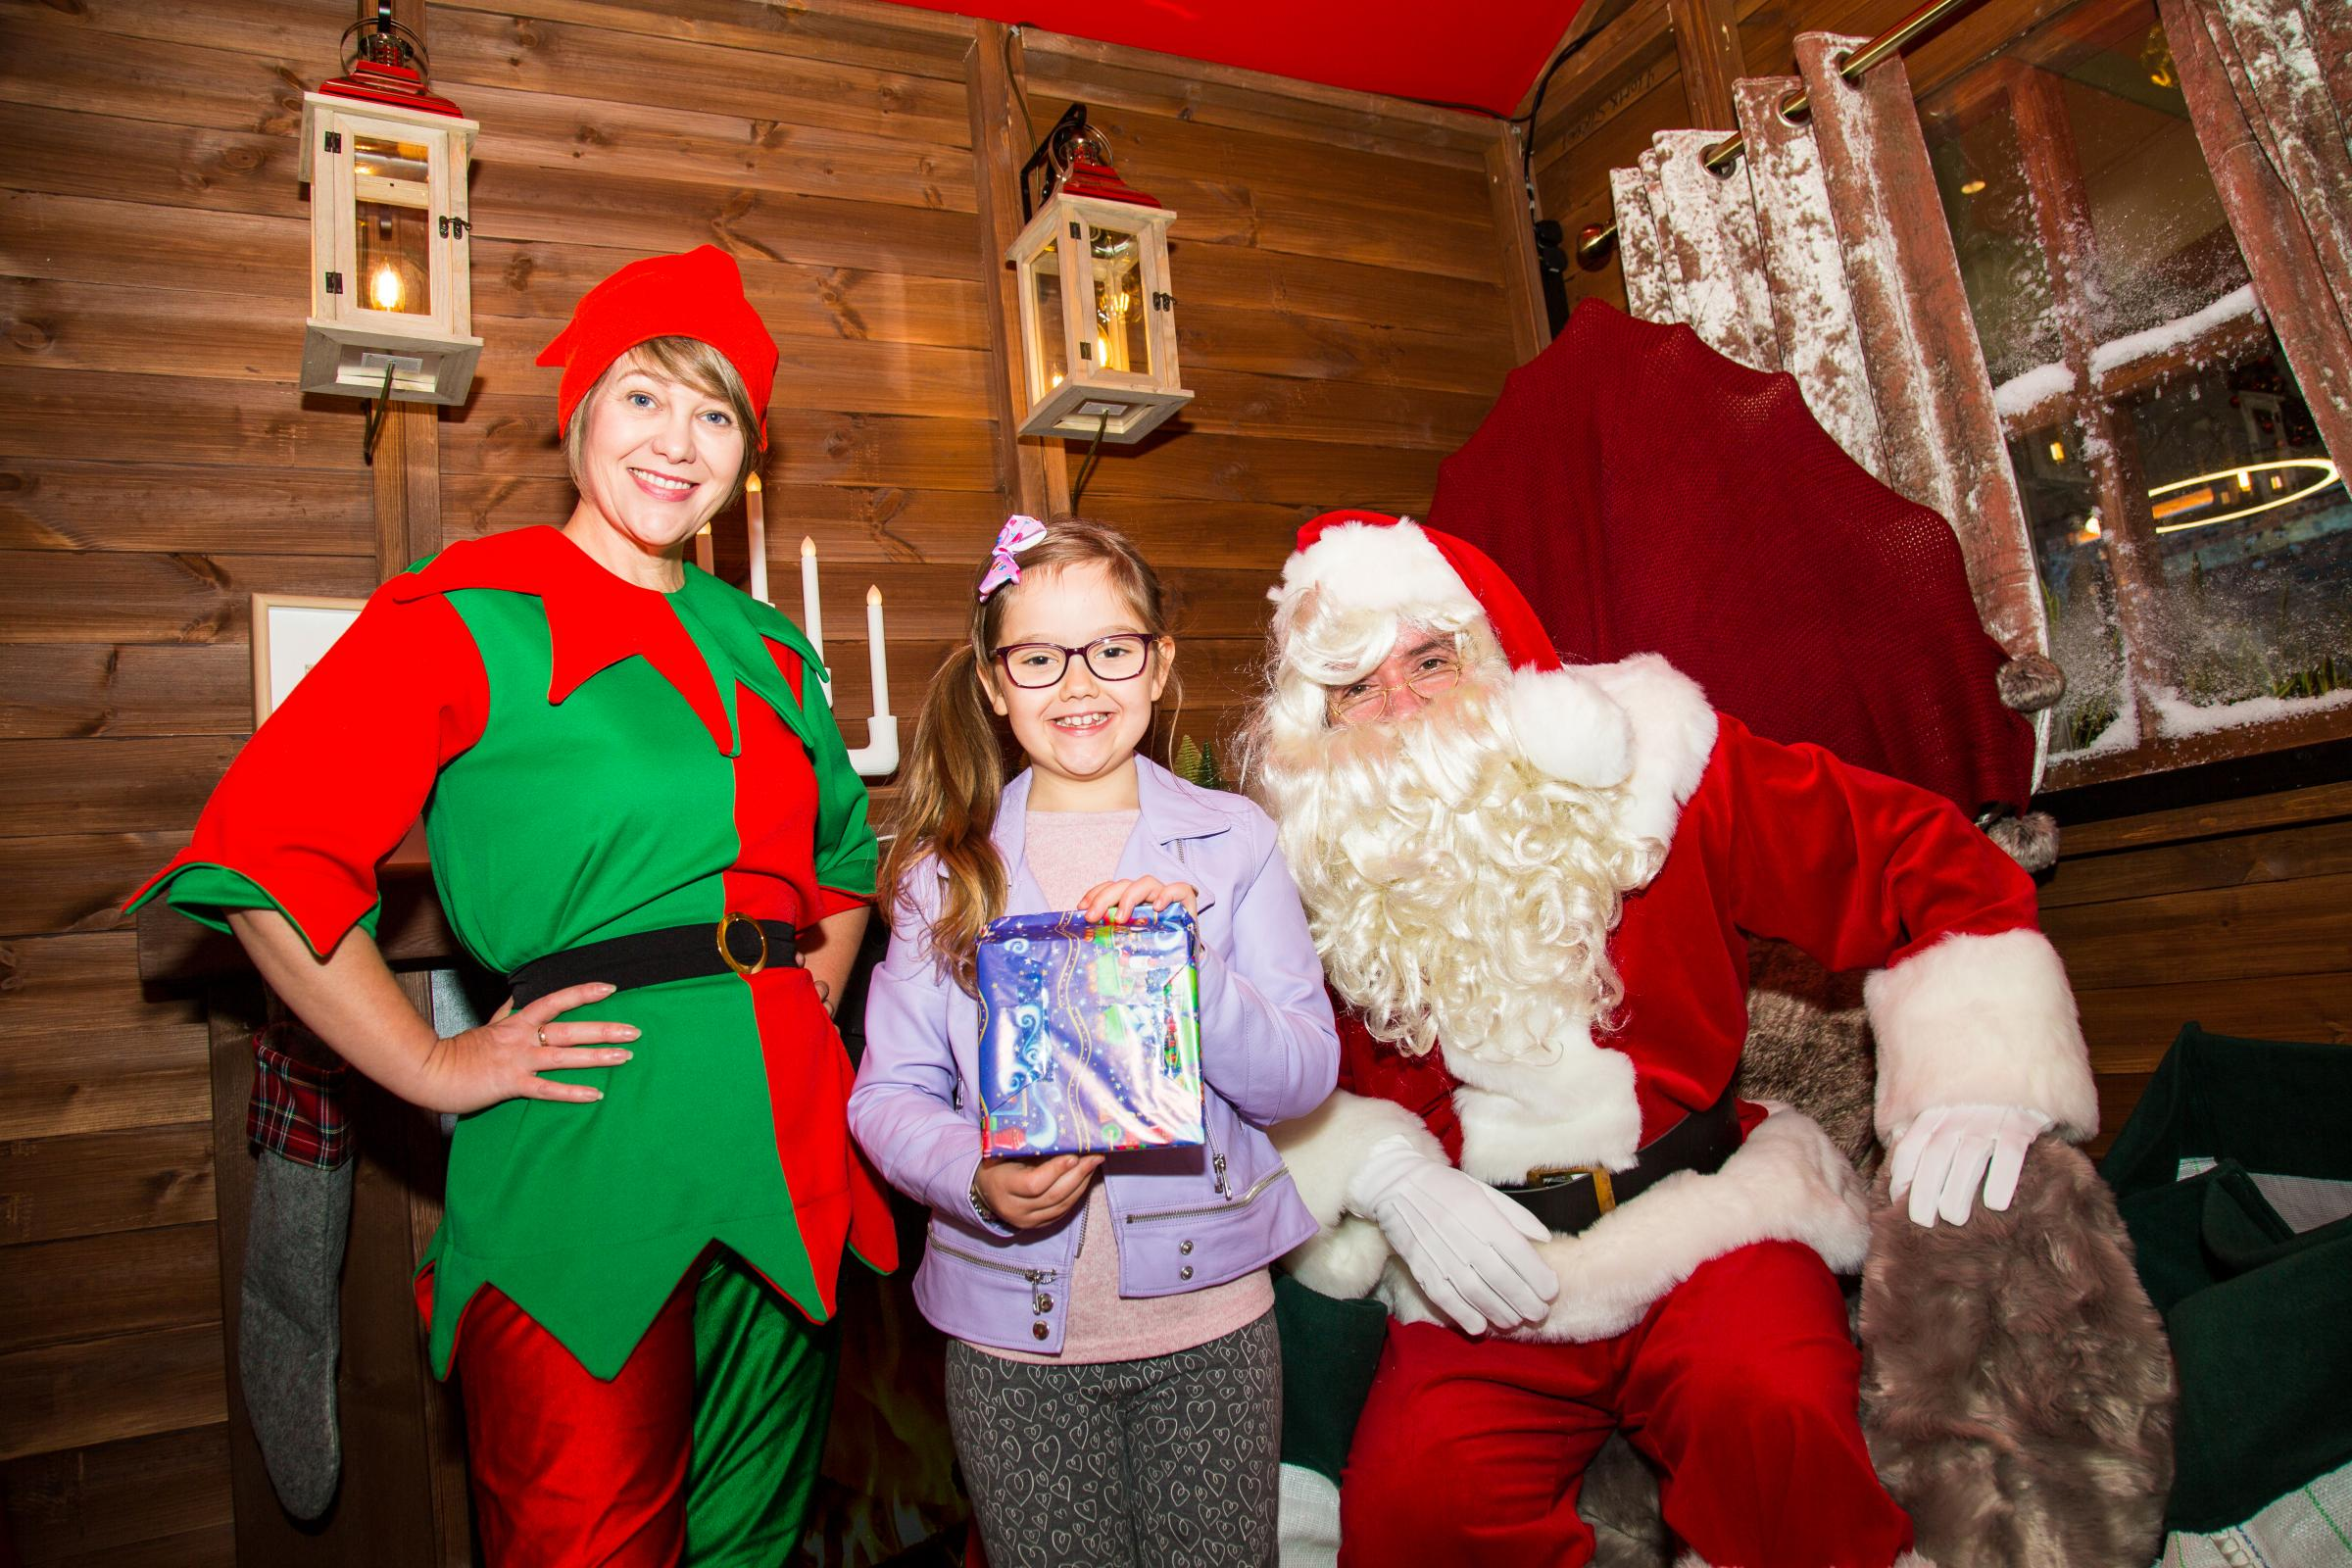 Meet Santa Claus at the Outlet Village this Christmas